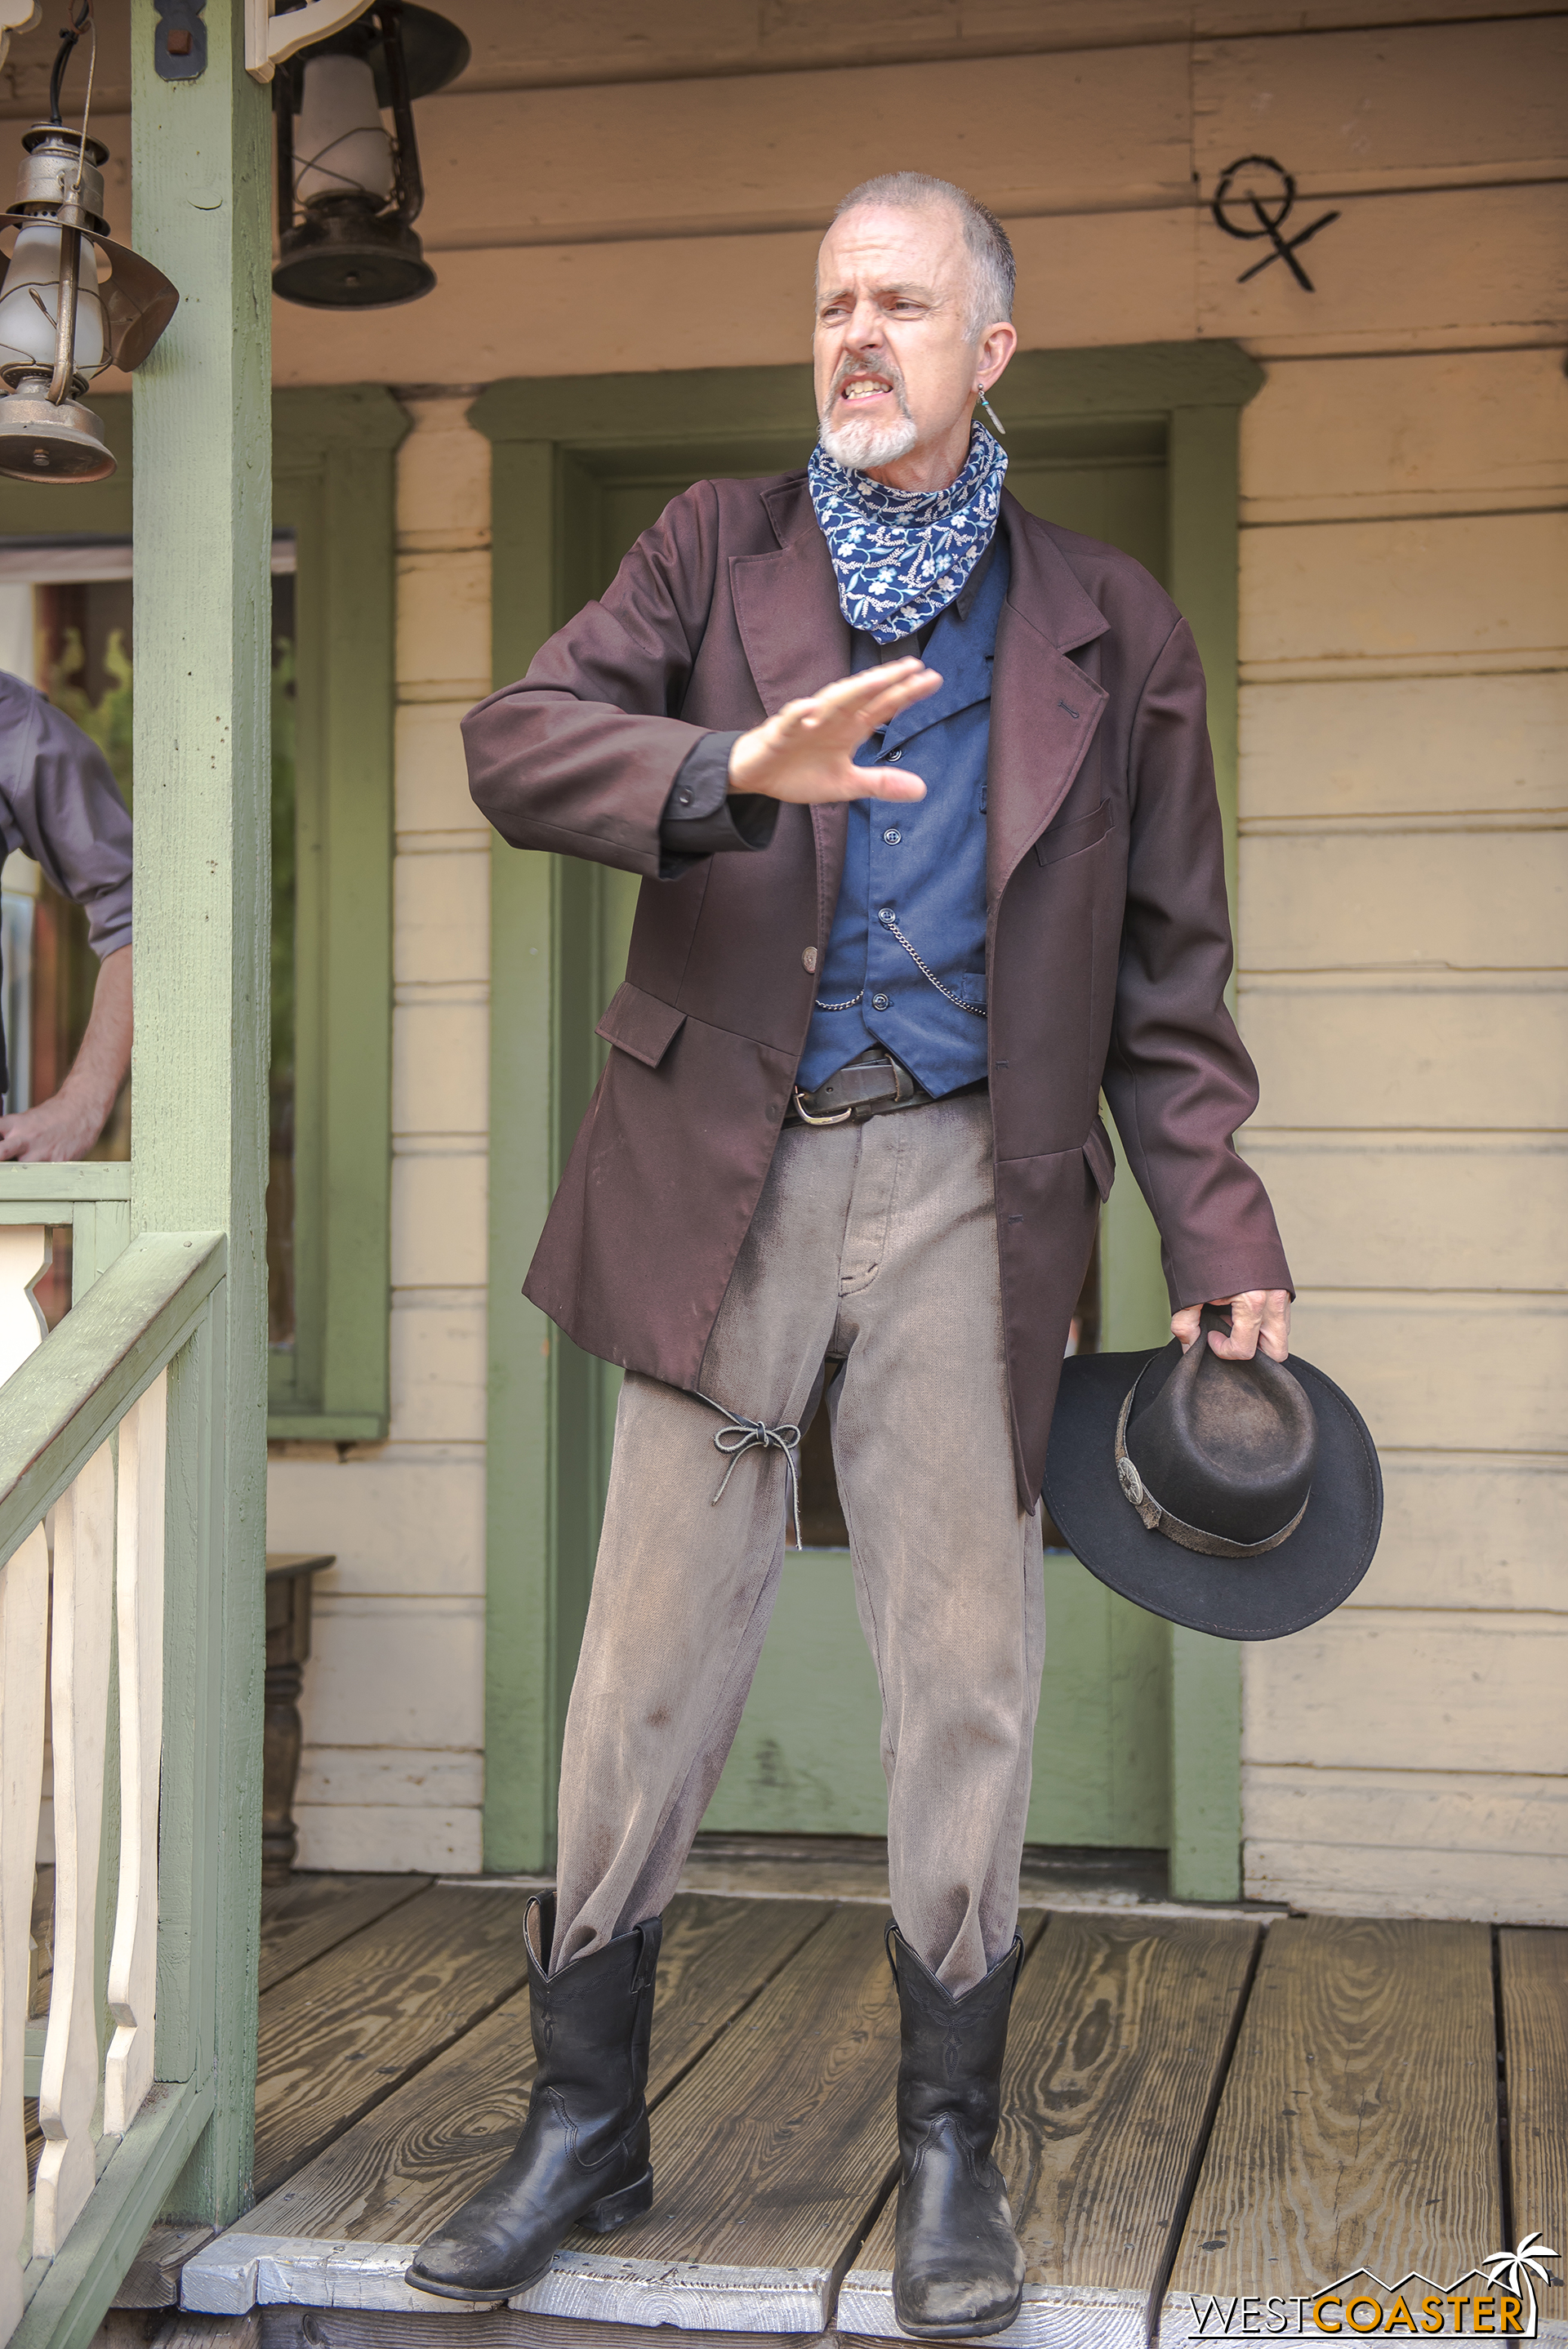 Be it stealing a train to help his son break out of jail at the end of season 1 or trying to reclaim the Calico deed throughout season 2 because he loved the city or getting into a shootout earlier in the day because he loved his wife… Ox was only committing crimes out of love.